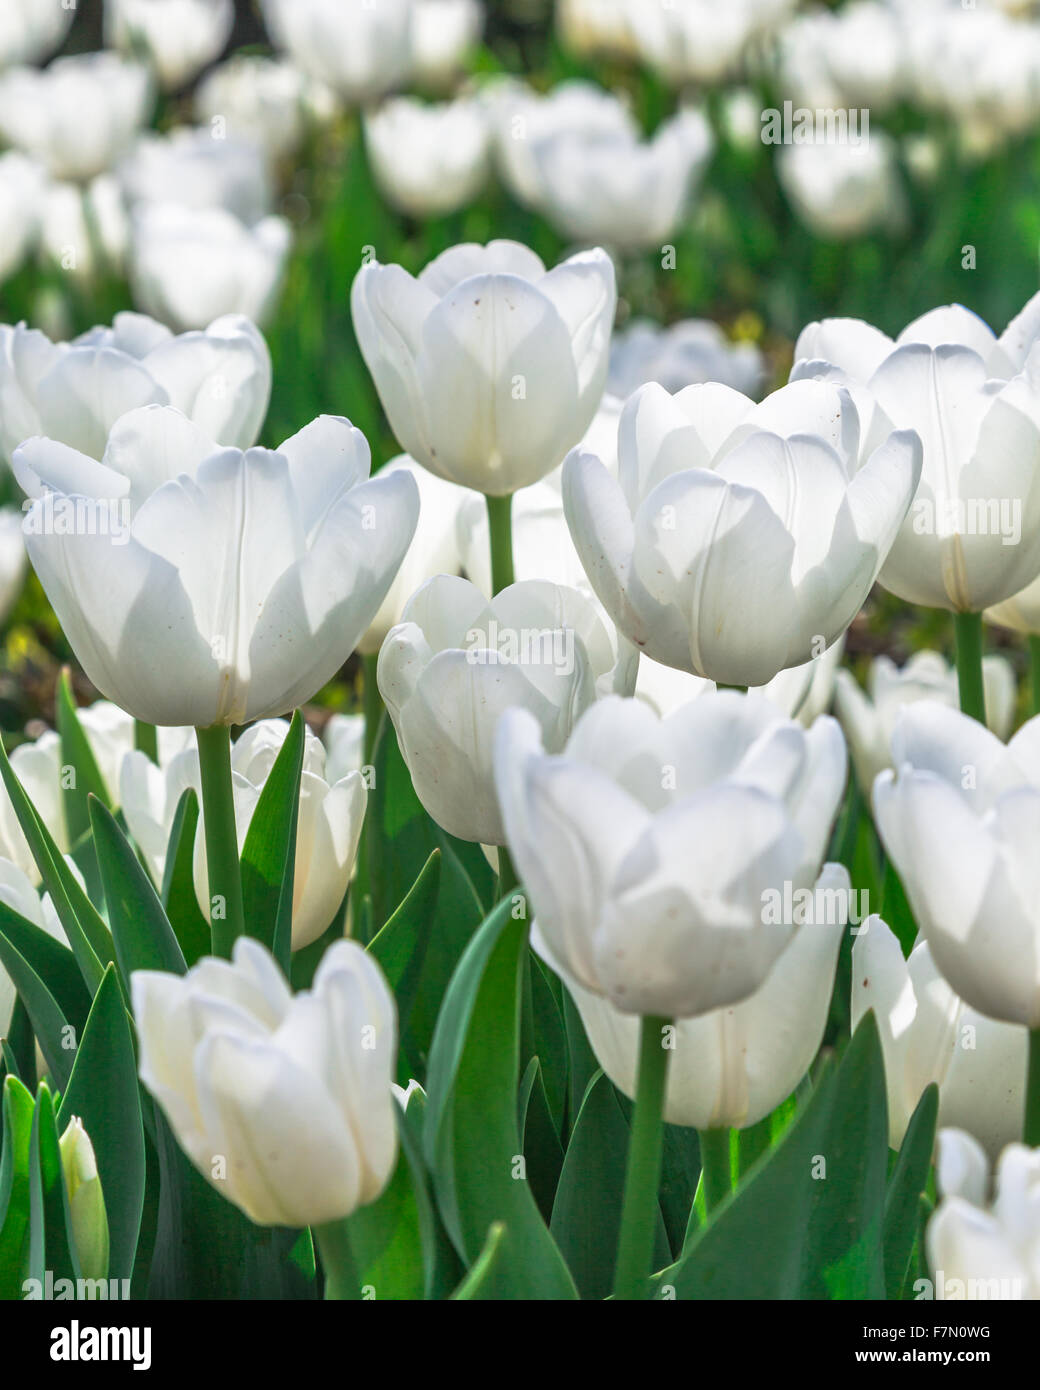 White tulip flowers tulipa lilioideae stock photos white tulip white tulip flowers tulipa lilioideae stock image dhlflorist Image collections